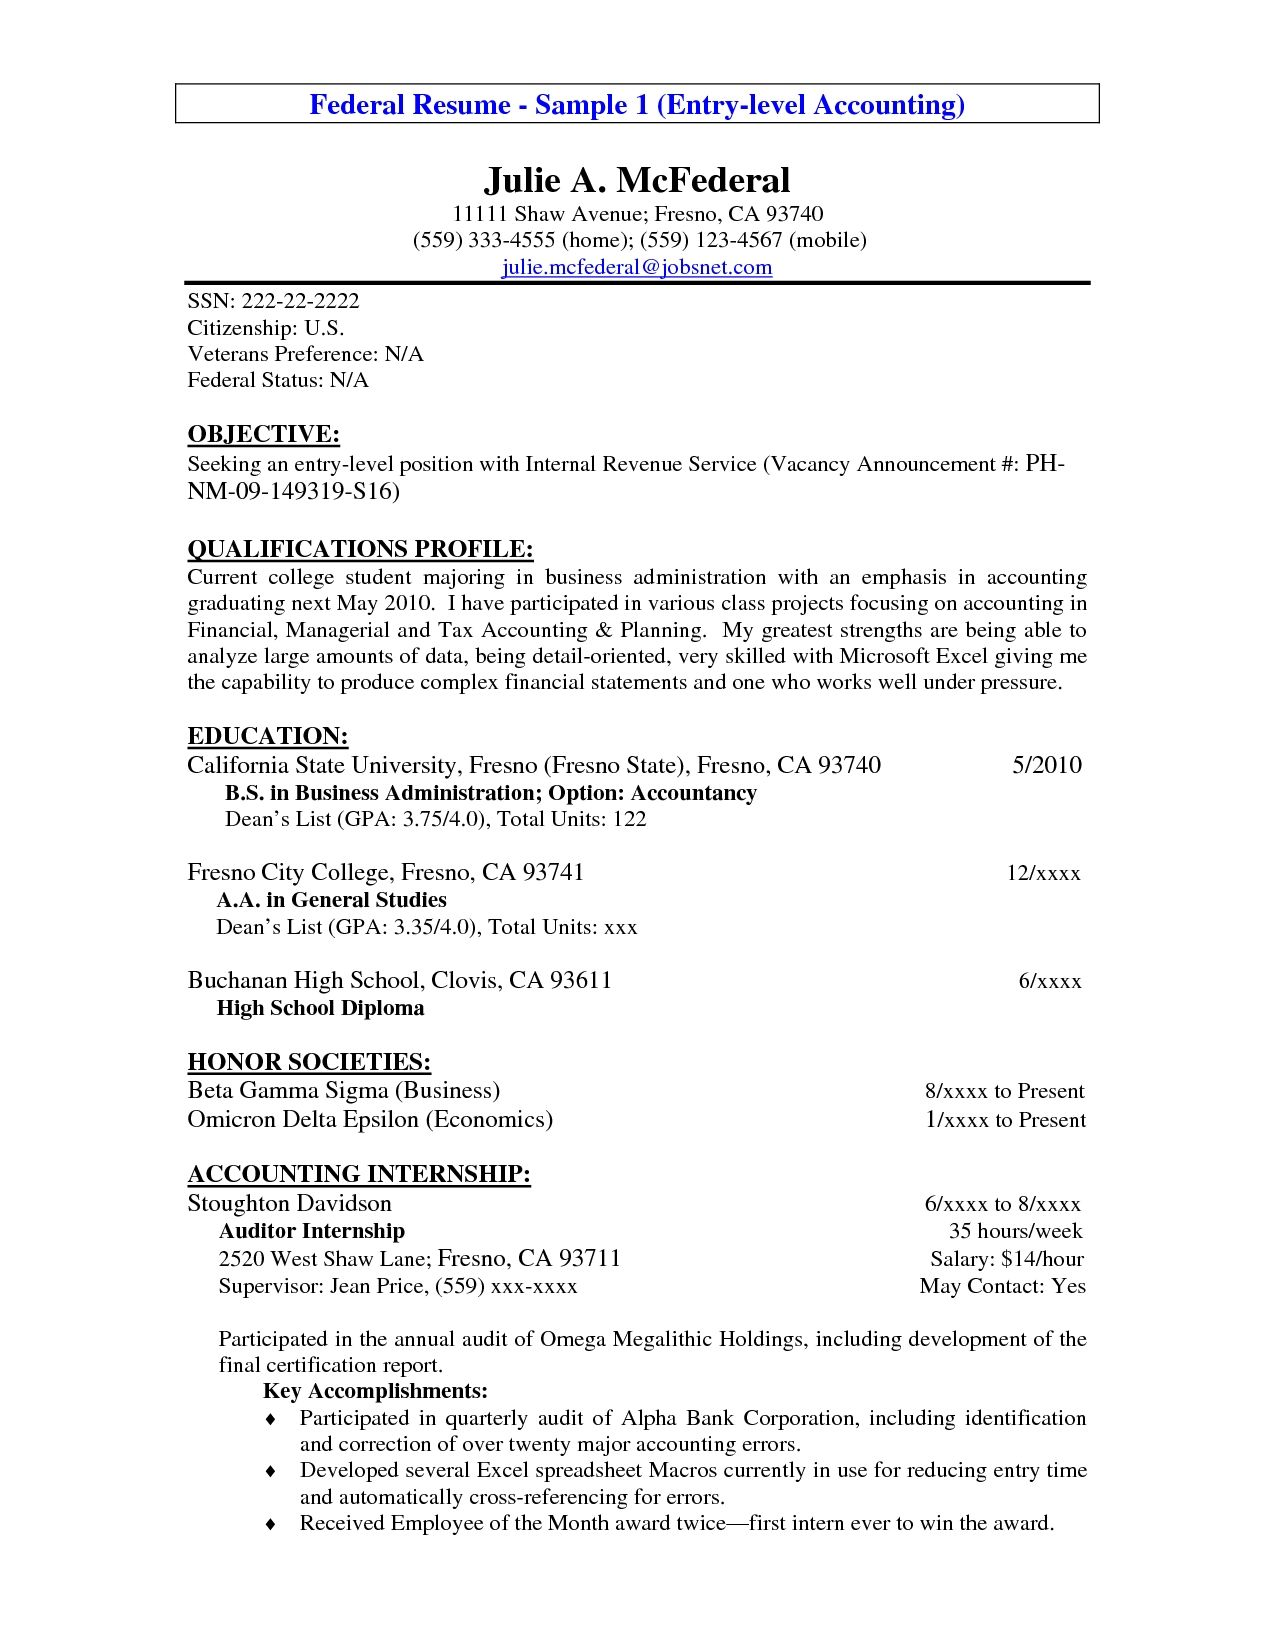 entry level resume example entry level accounting resume sample gallery photos - How To Write Entry Level Resume